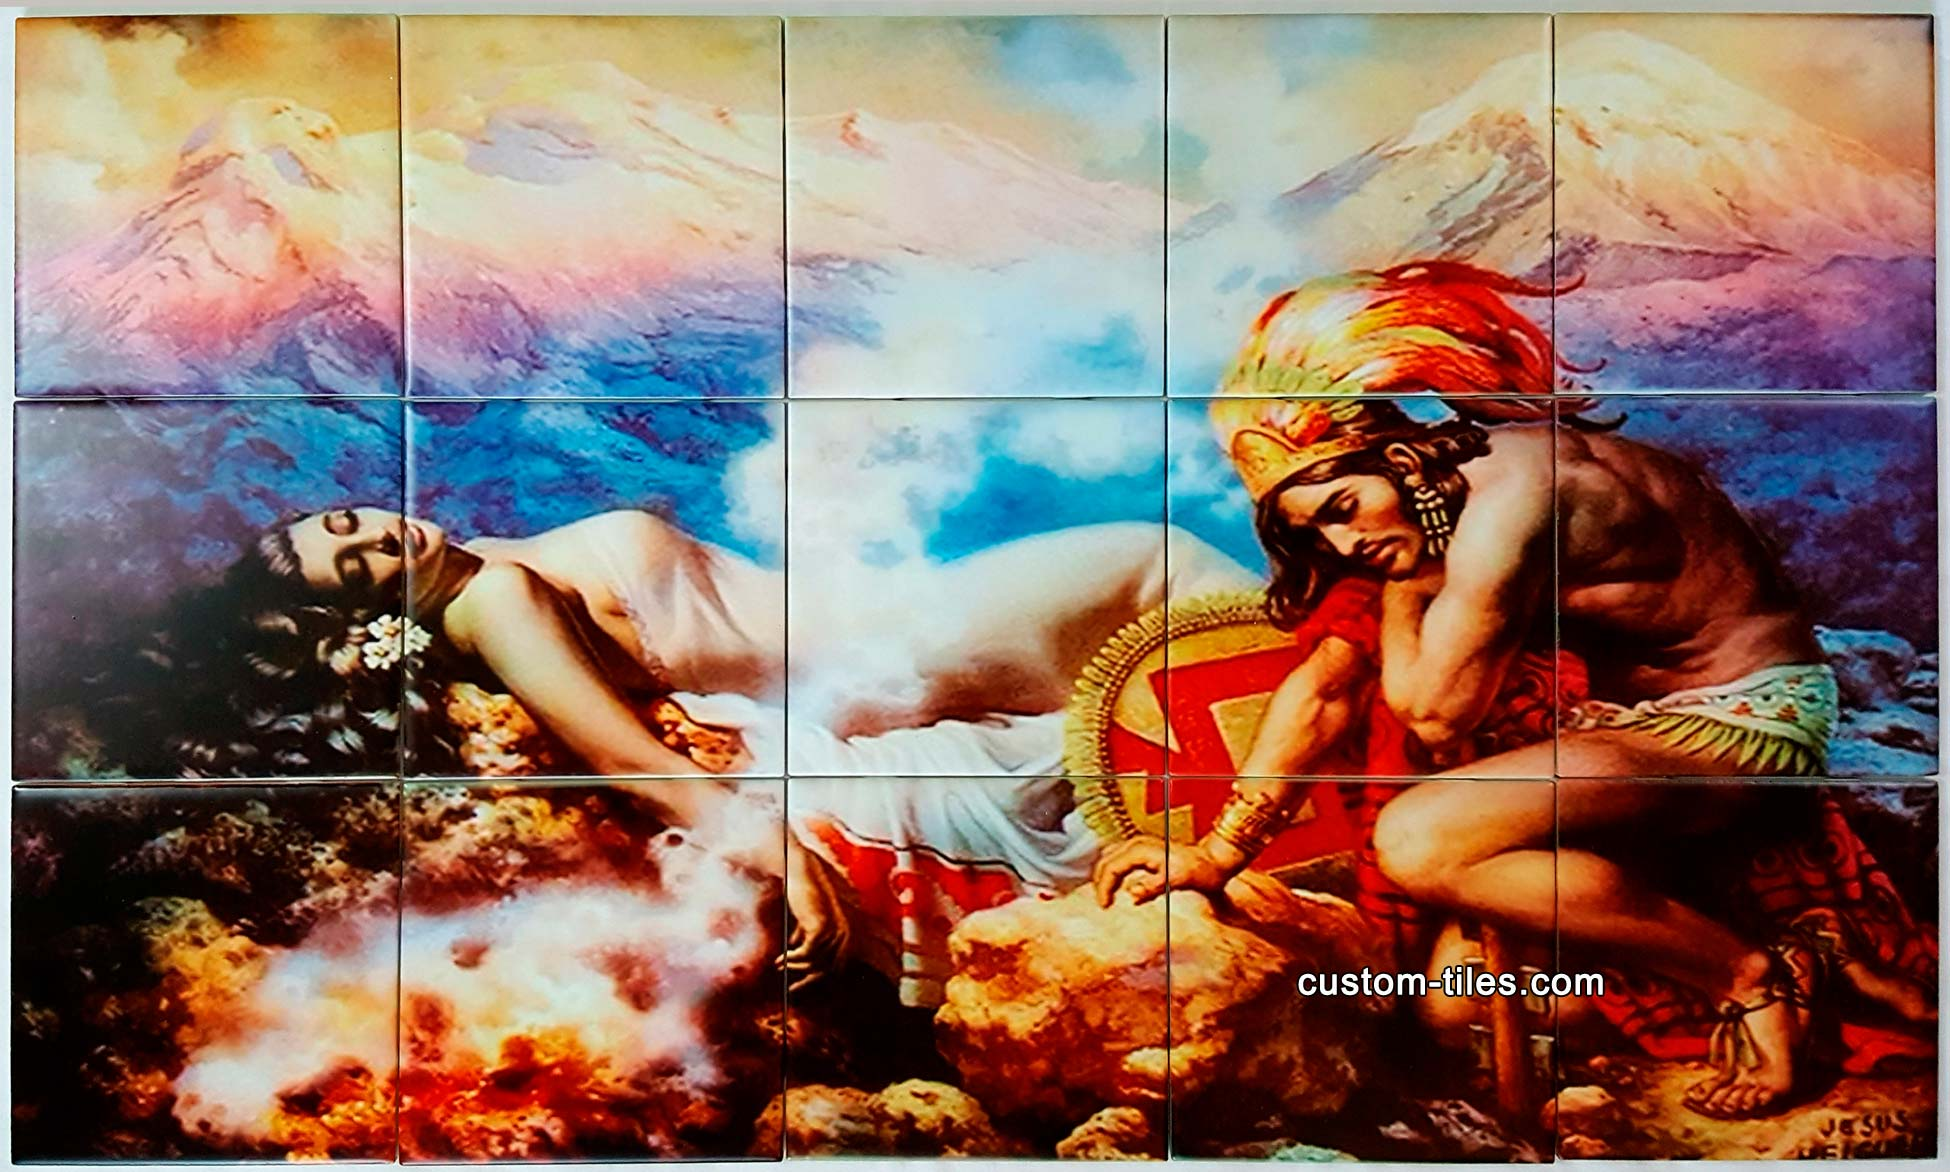 Legend of Volcanos Painting Custom Tile Backsplash Mural